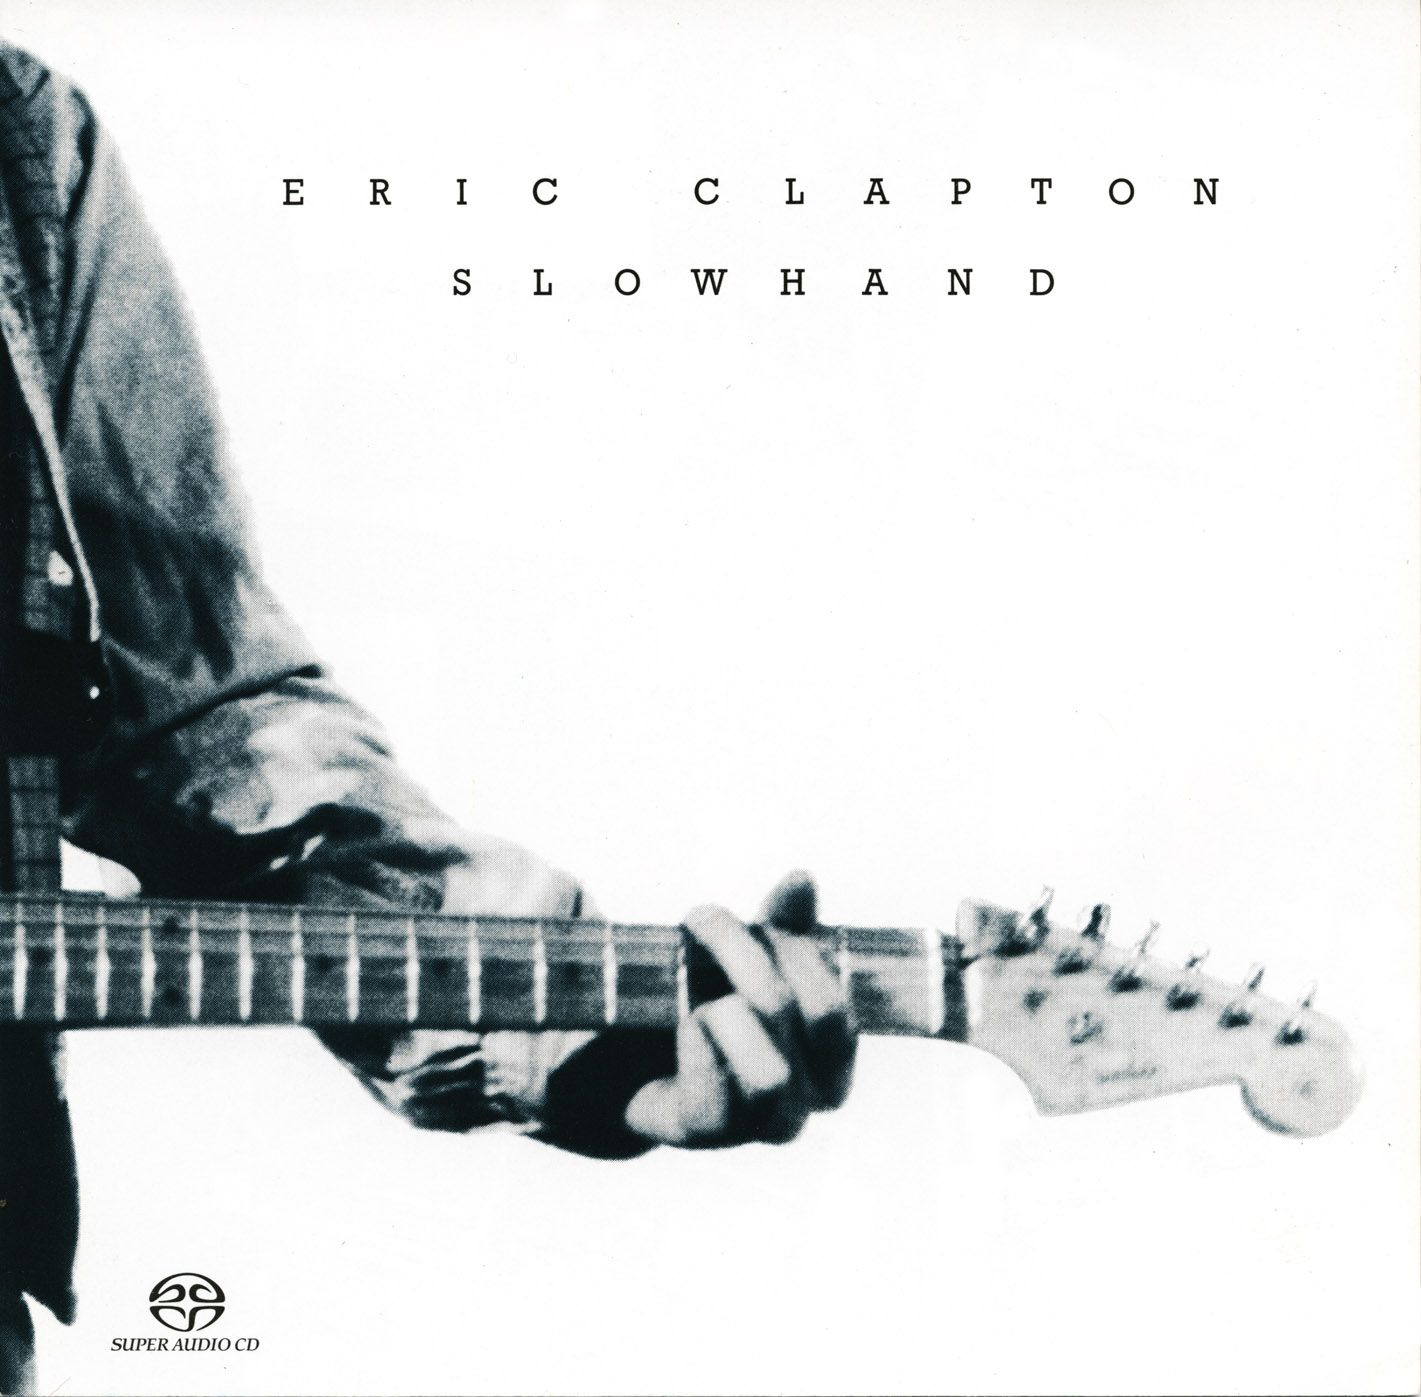 Eric Clapton Slowhand Black And White Album Art